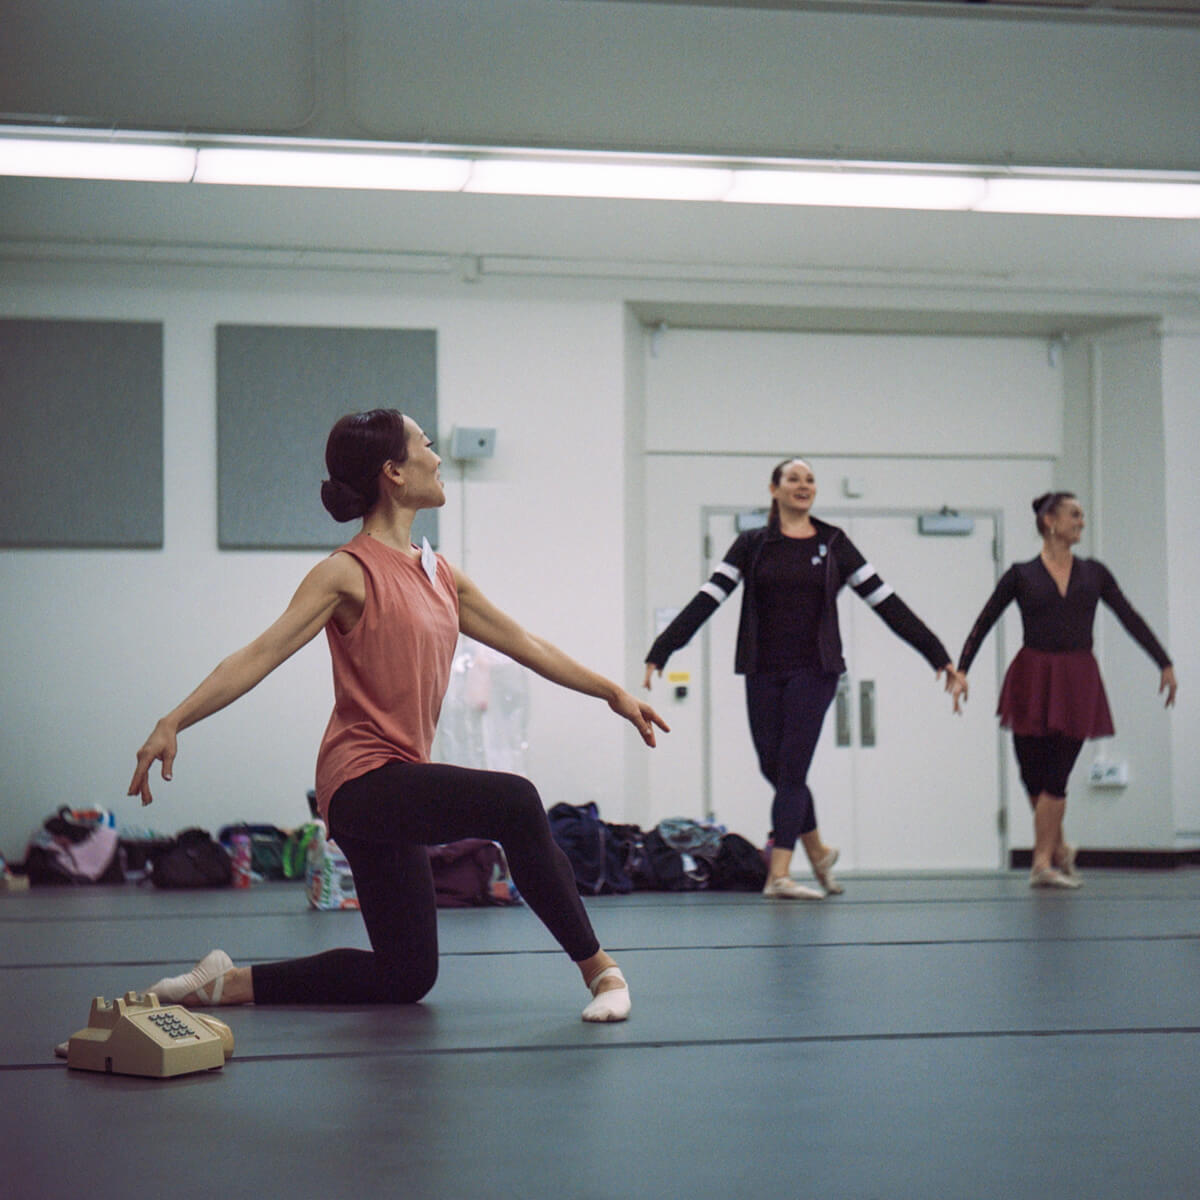 5 Frames... Of ballet on film shot on Kodak Portra 800 (120 Format / EI 800 / Yashica 635 - by Lisa Cho